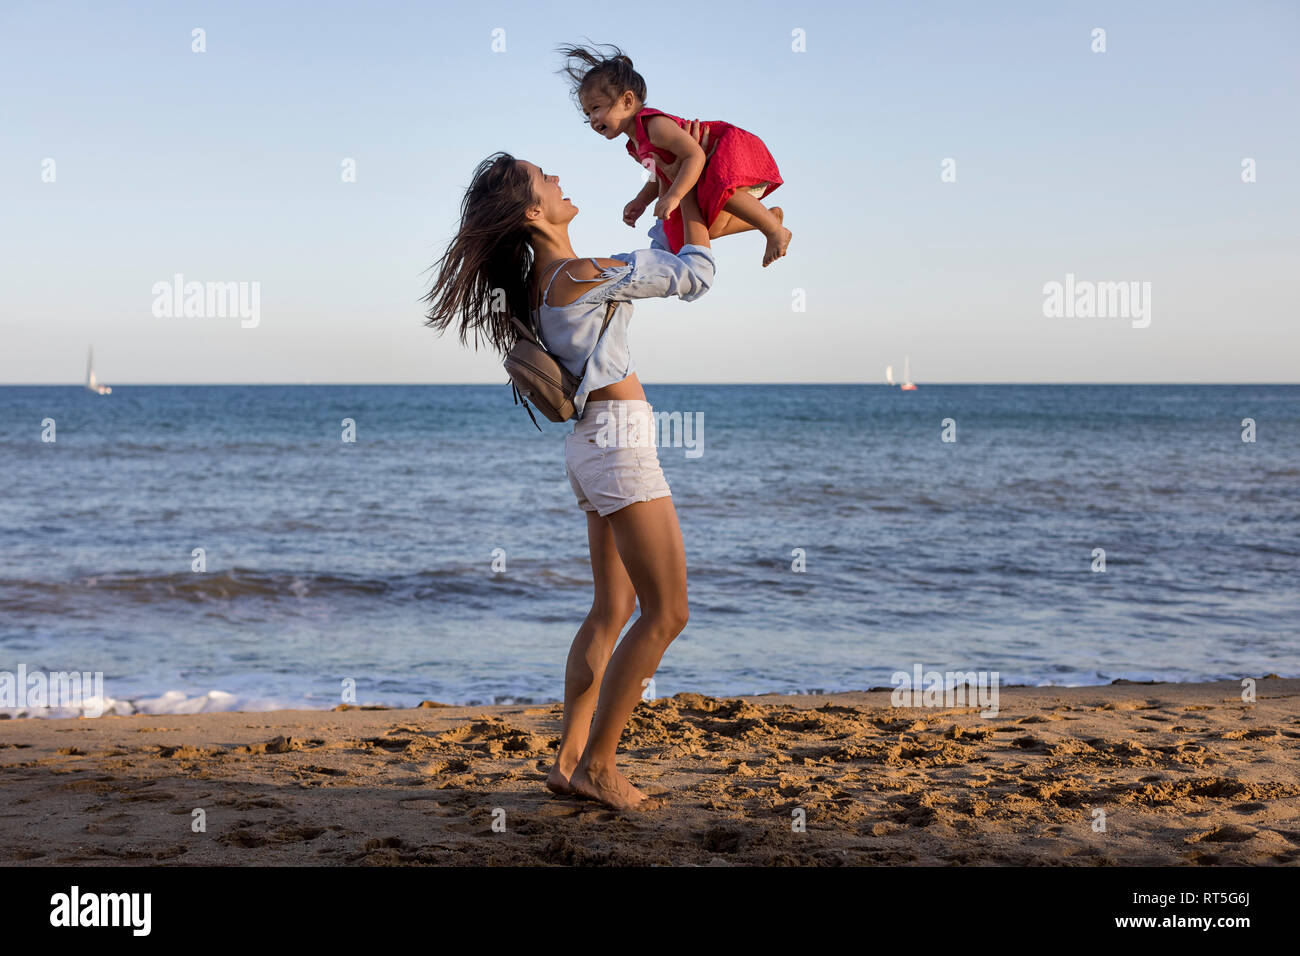 Mother and daughter having fun on the beach, pretending to fly Stock Photo